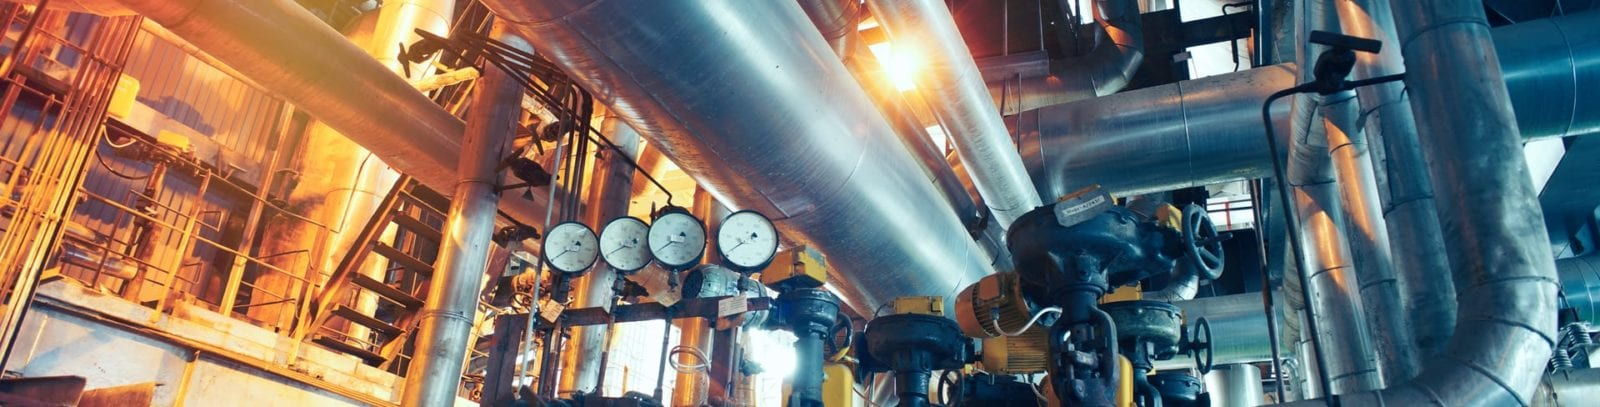 Interior of a Mechanical Factory Area Stock Photo